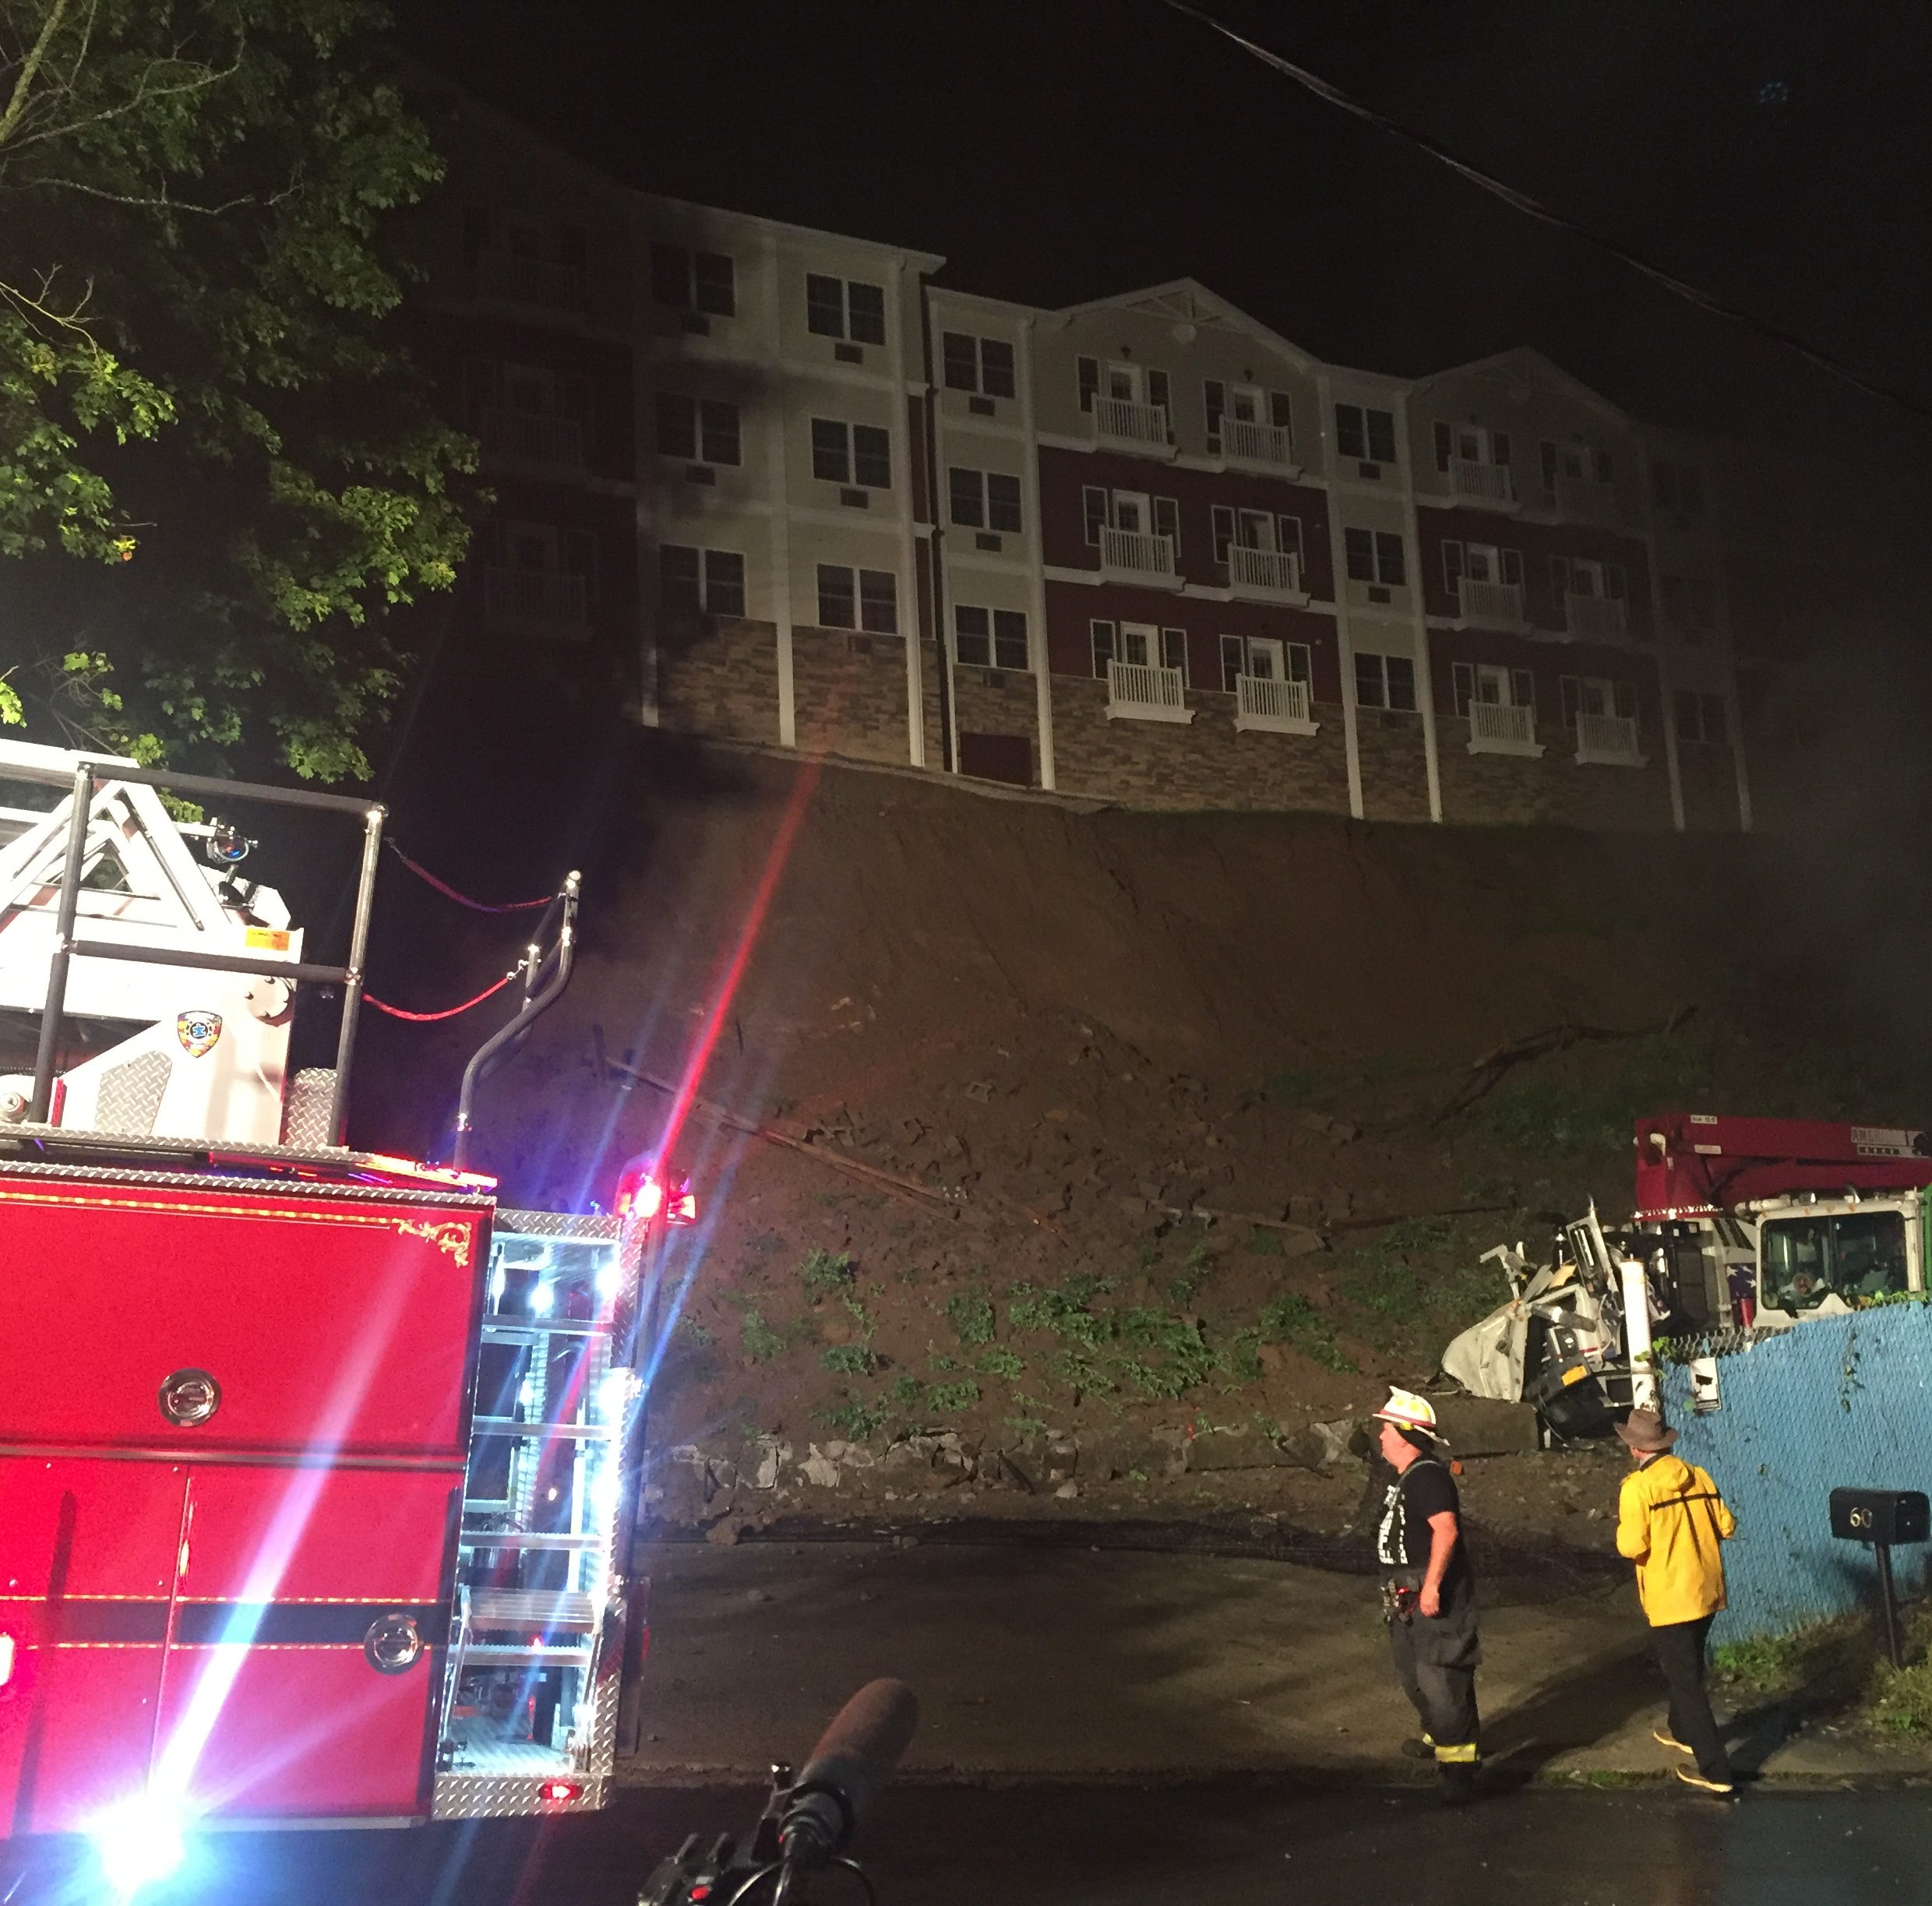 Retaining wall, 40 to 50 feet high, collapses in Ossining